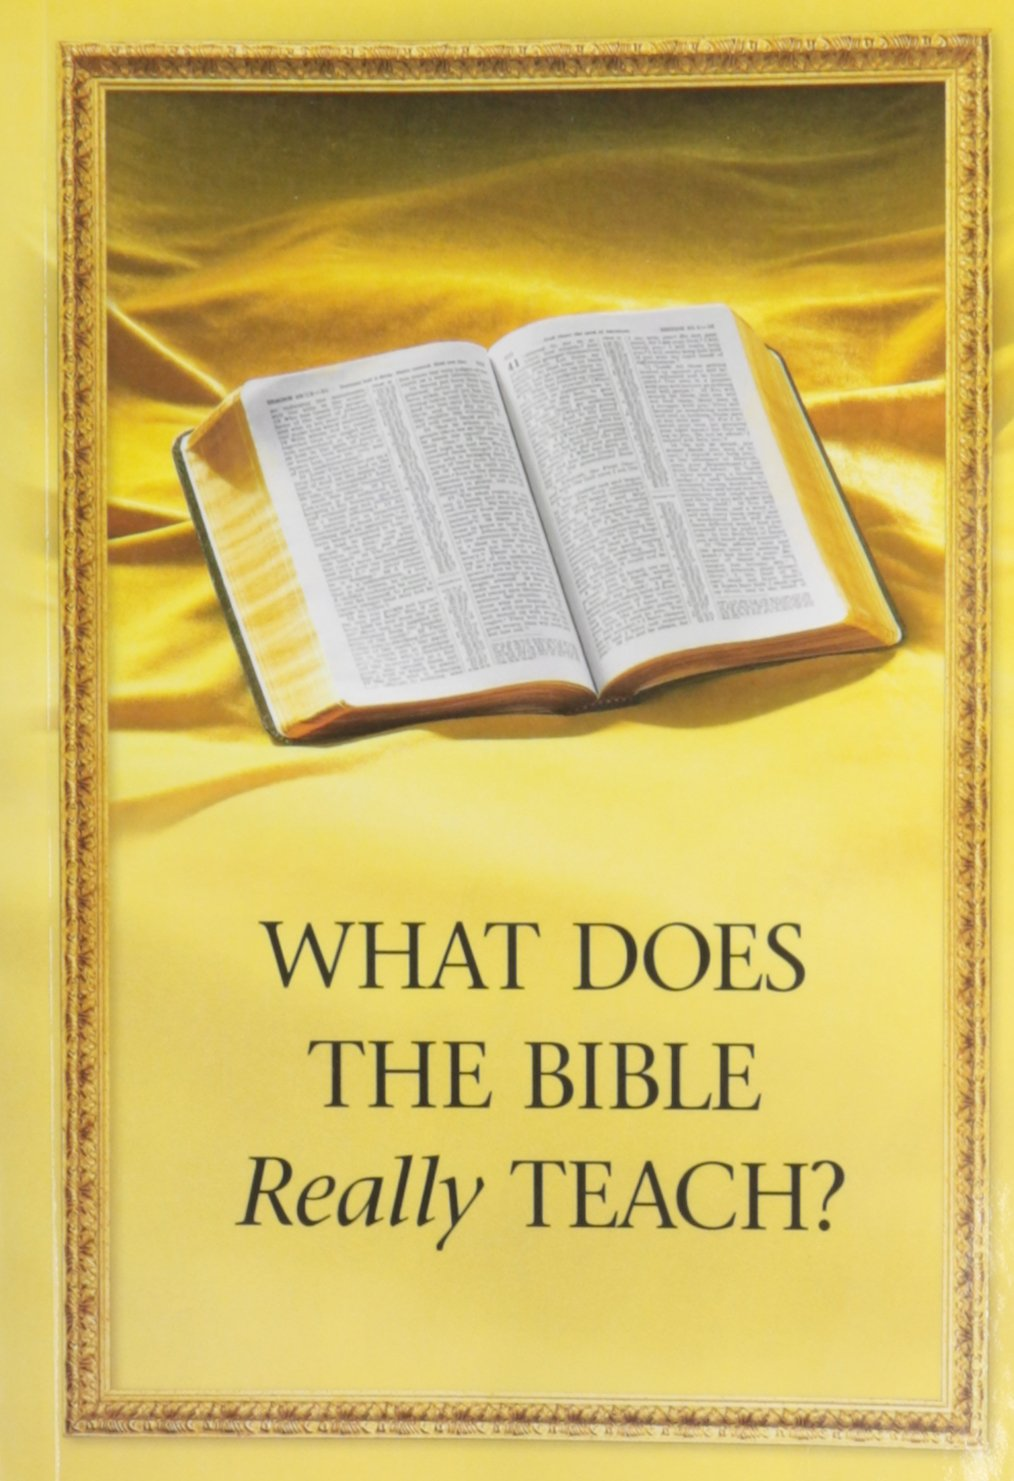 What Does The Bible Really Teach Watch Tower Bible Society Jehovah S Witnesses Amazon Com Books The books of the bible, listed in order and by chapter, so you find verses quickly. what does the bible really teach